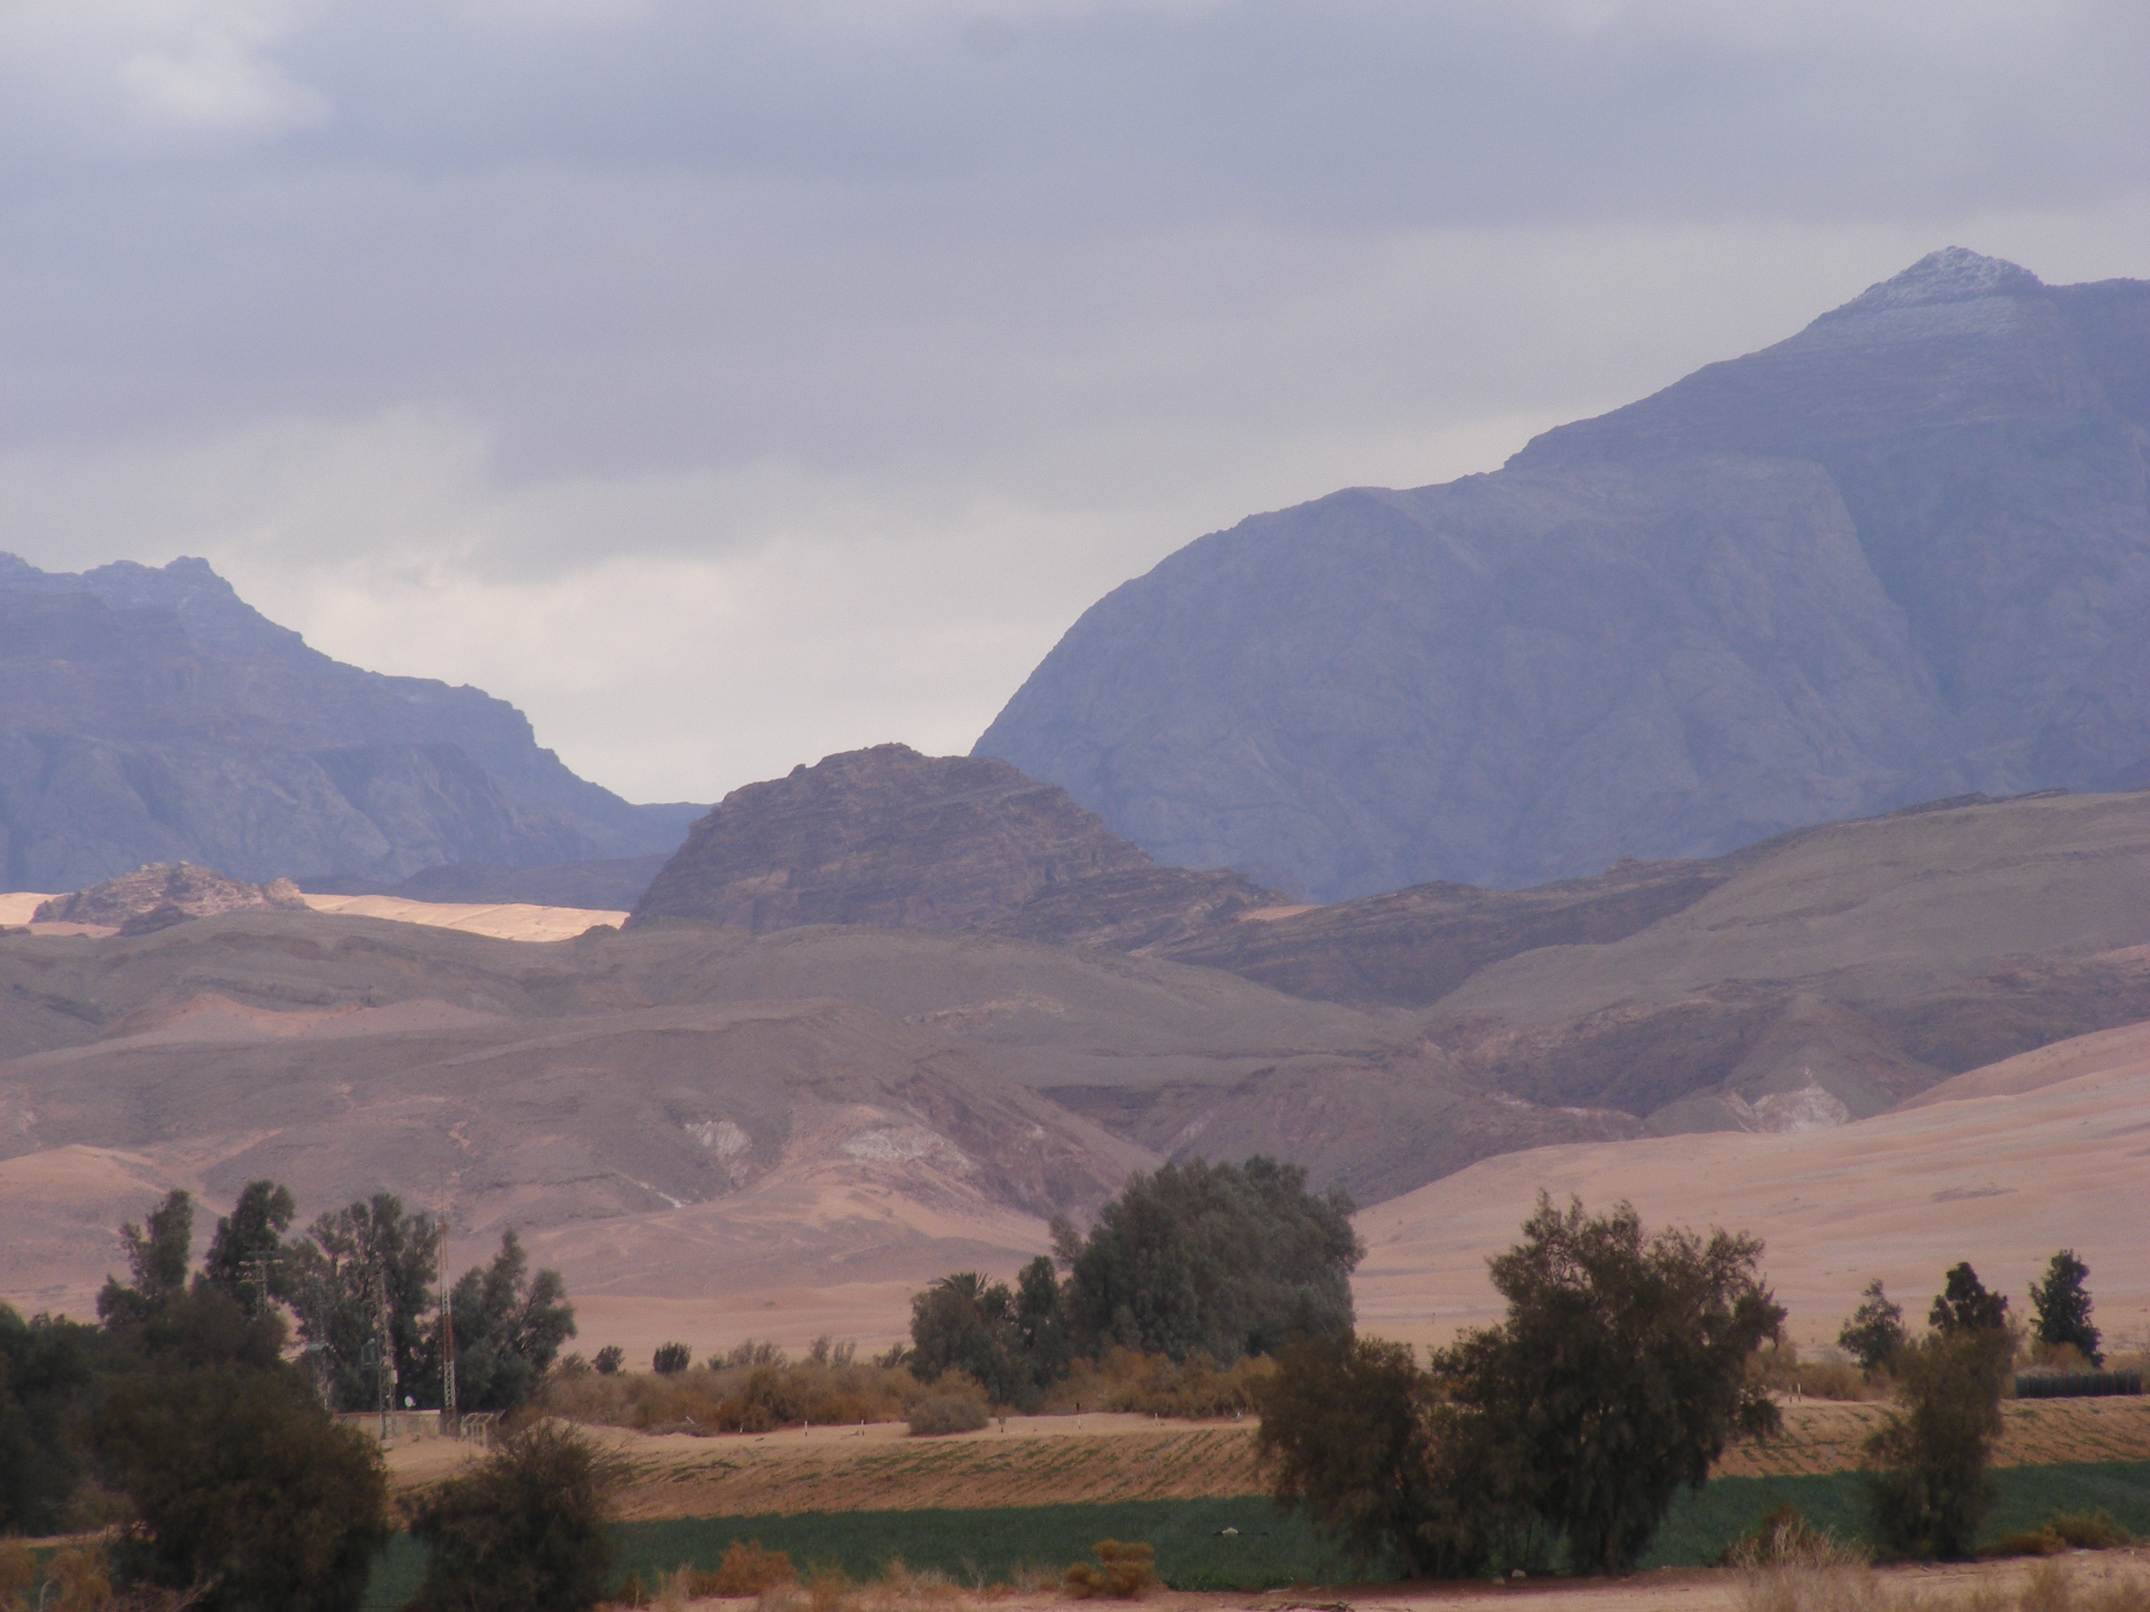 V shaped valley in Edom, Jordan